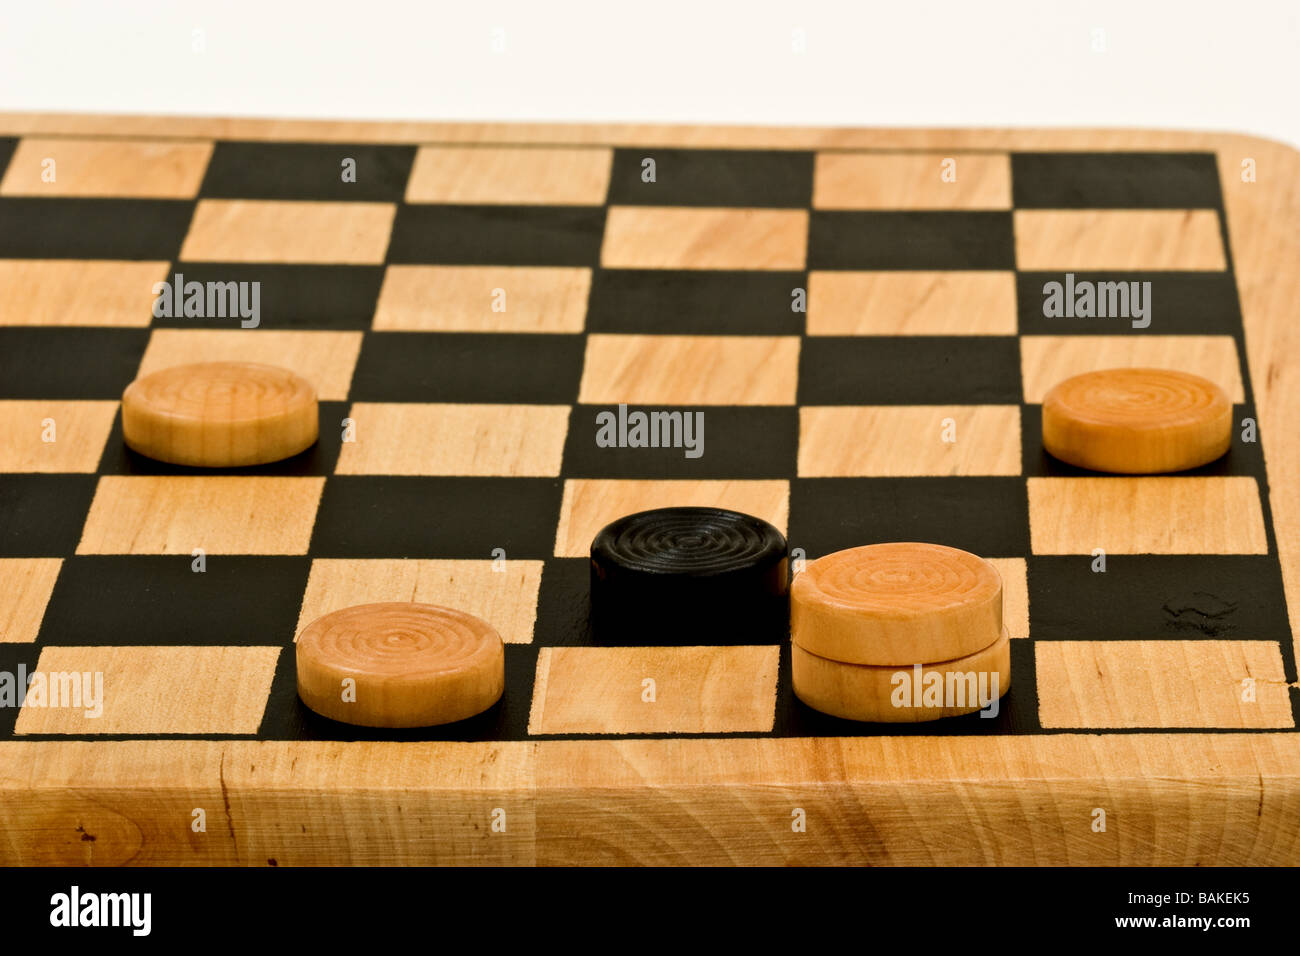 Checkers on a checkerboard at the end of the game - Stock Image